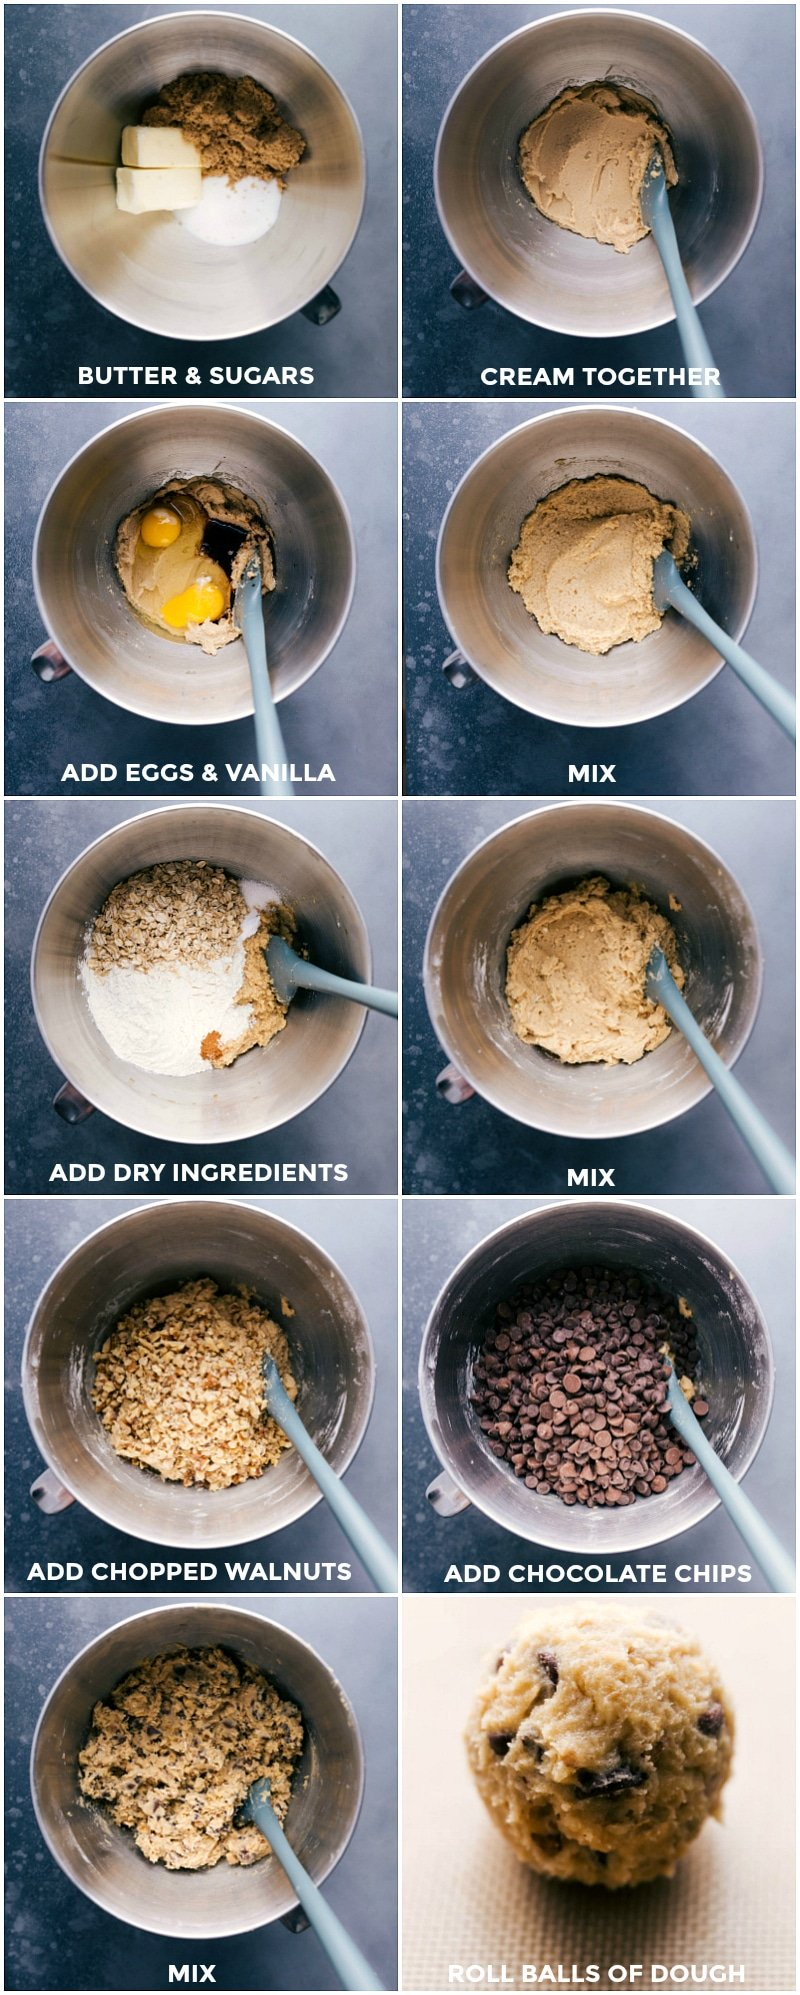 Process shots: butter and sugars in the bowl of a stand mixer; the ingredients creamed; adding eggs and vanilla; mixing again; adding dry ingredients; mixing; adding walnuts; adding chocolate chips; mixing again; rolling into dough balls.